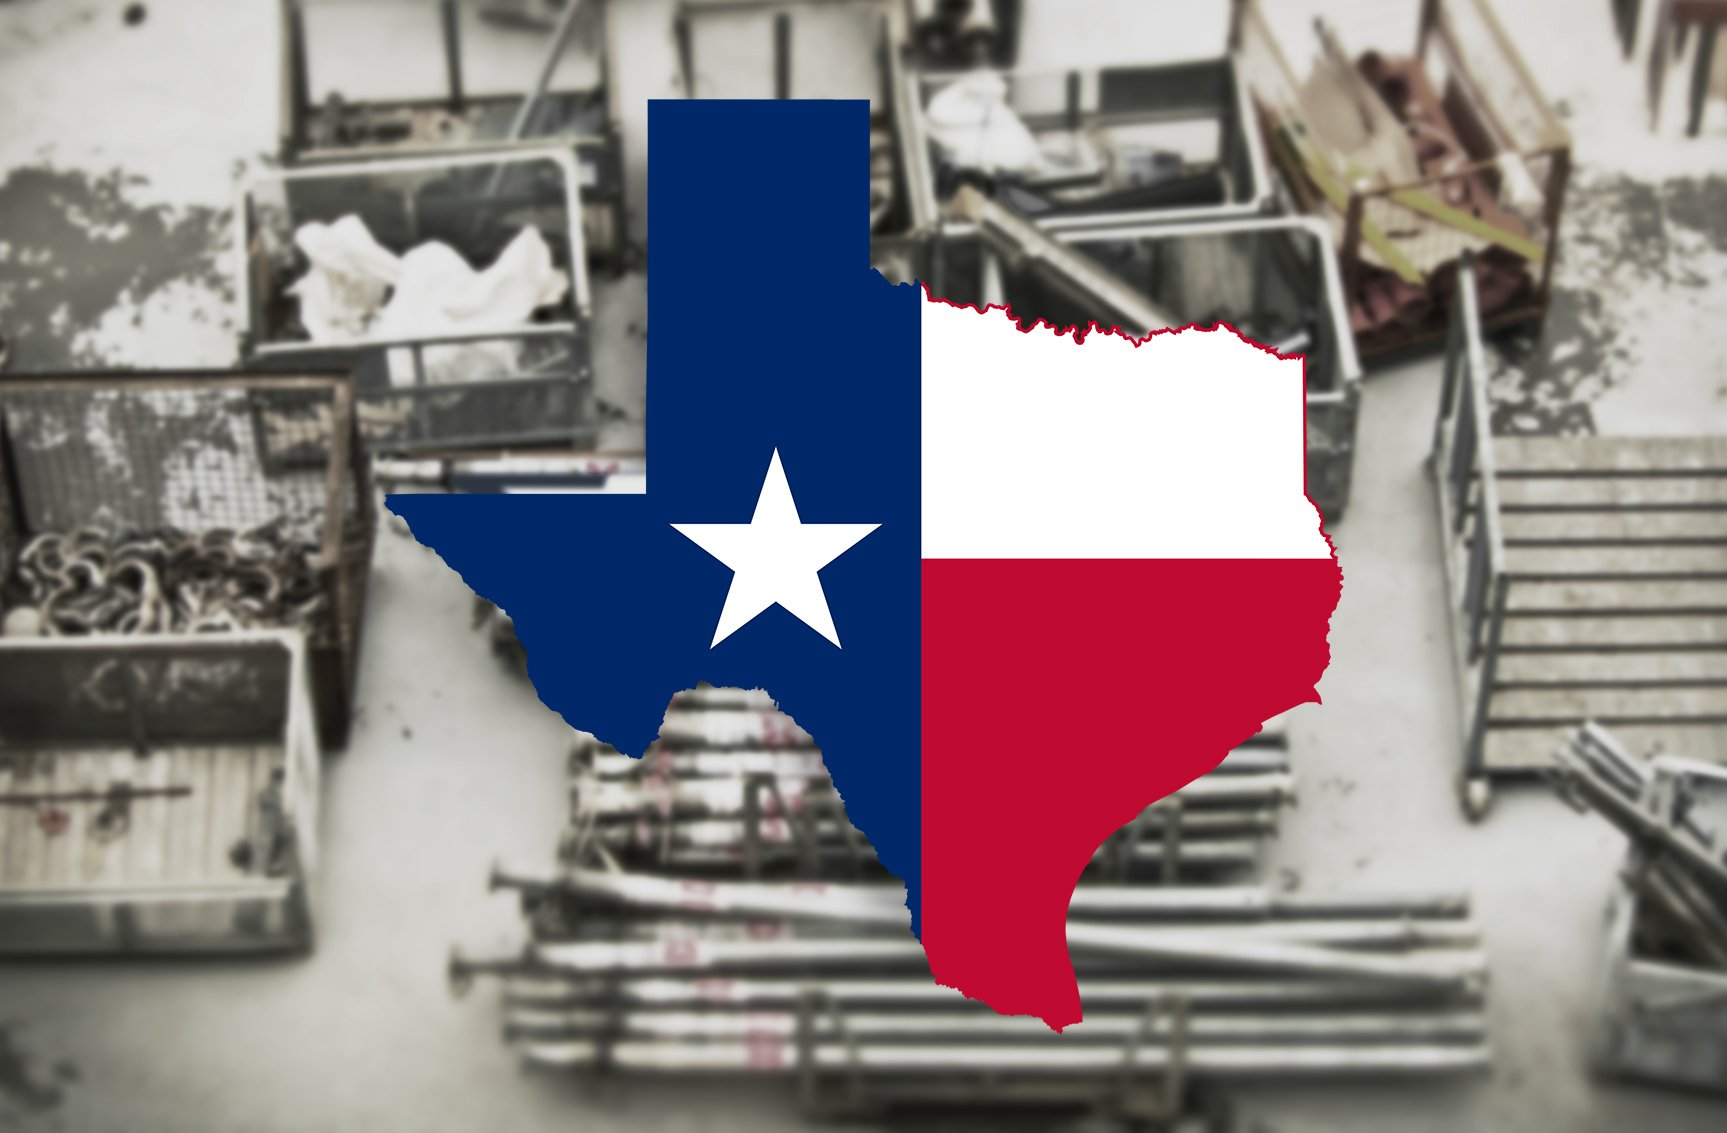 Construction Noise Laws In Texas - What You Should Know Before Starting